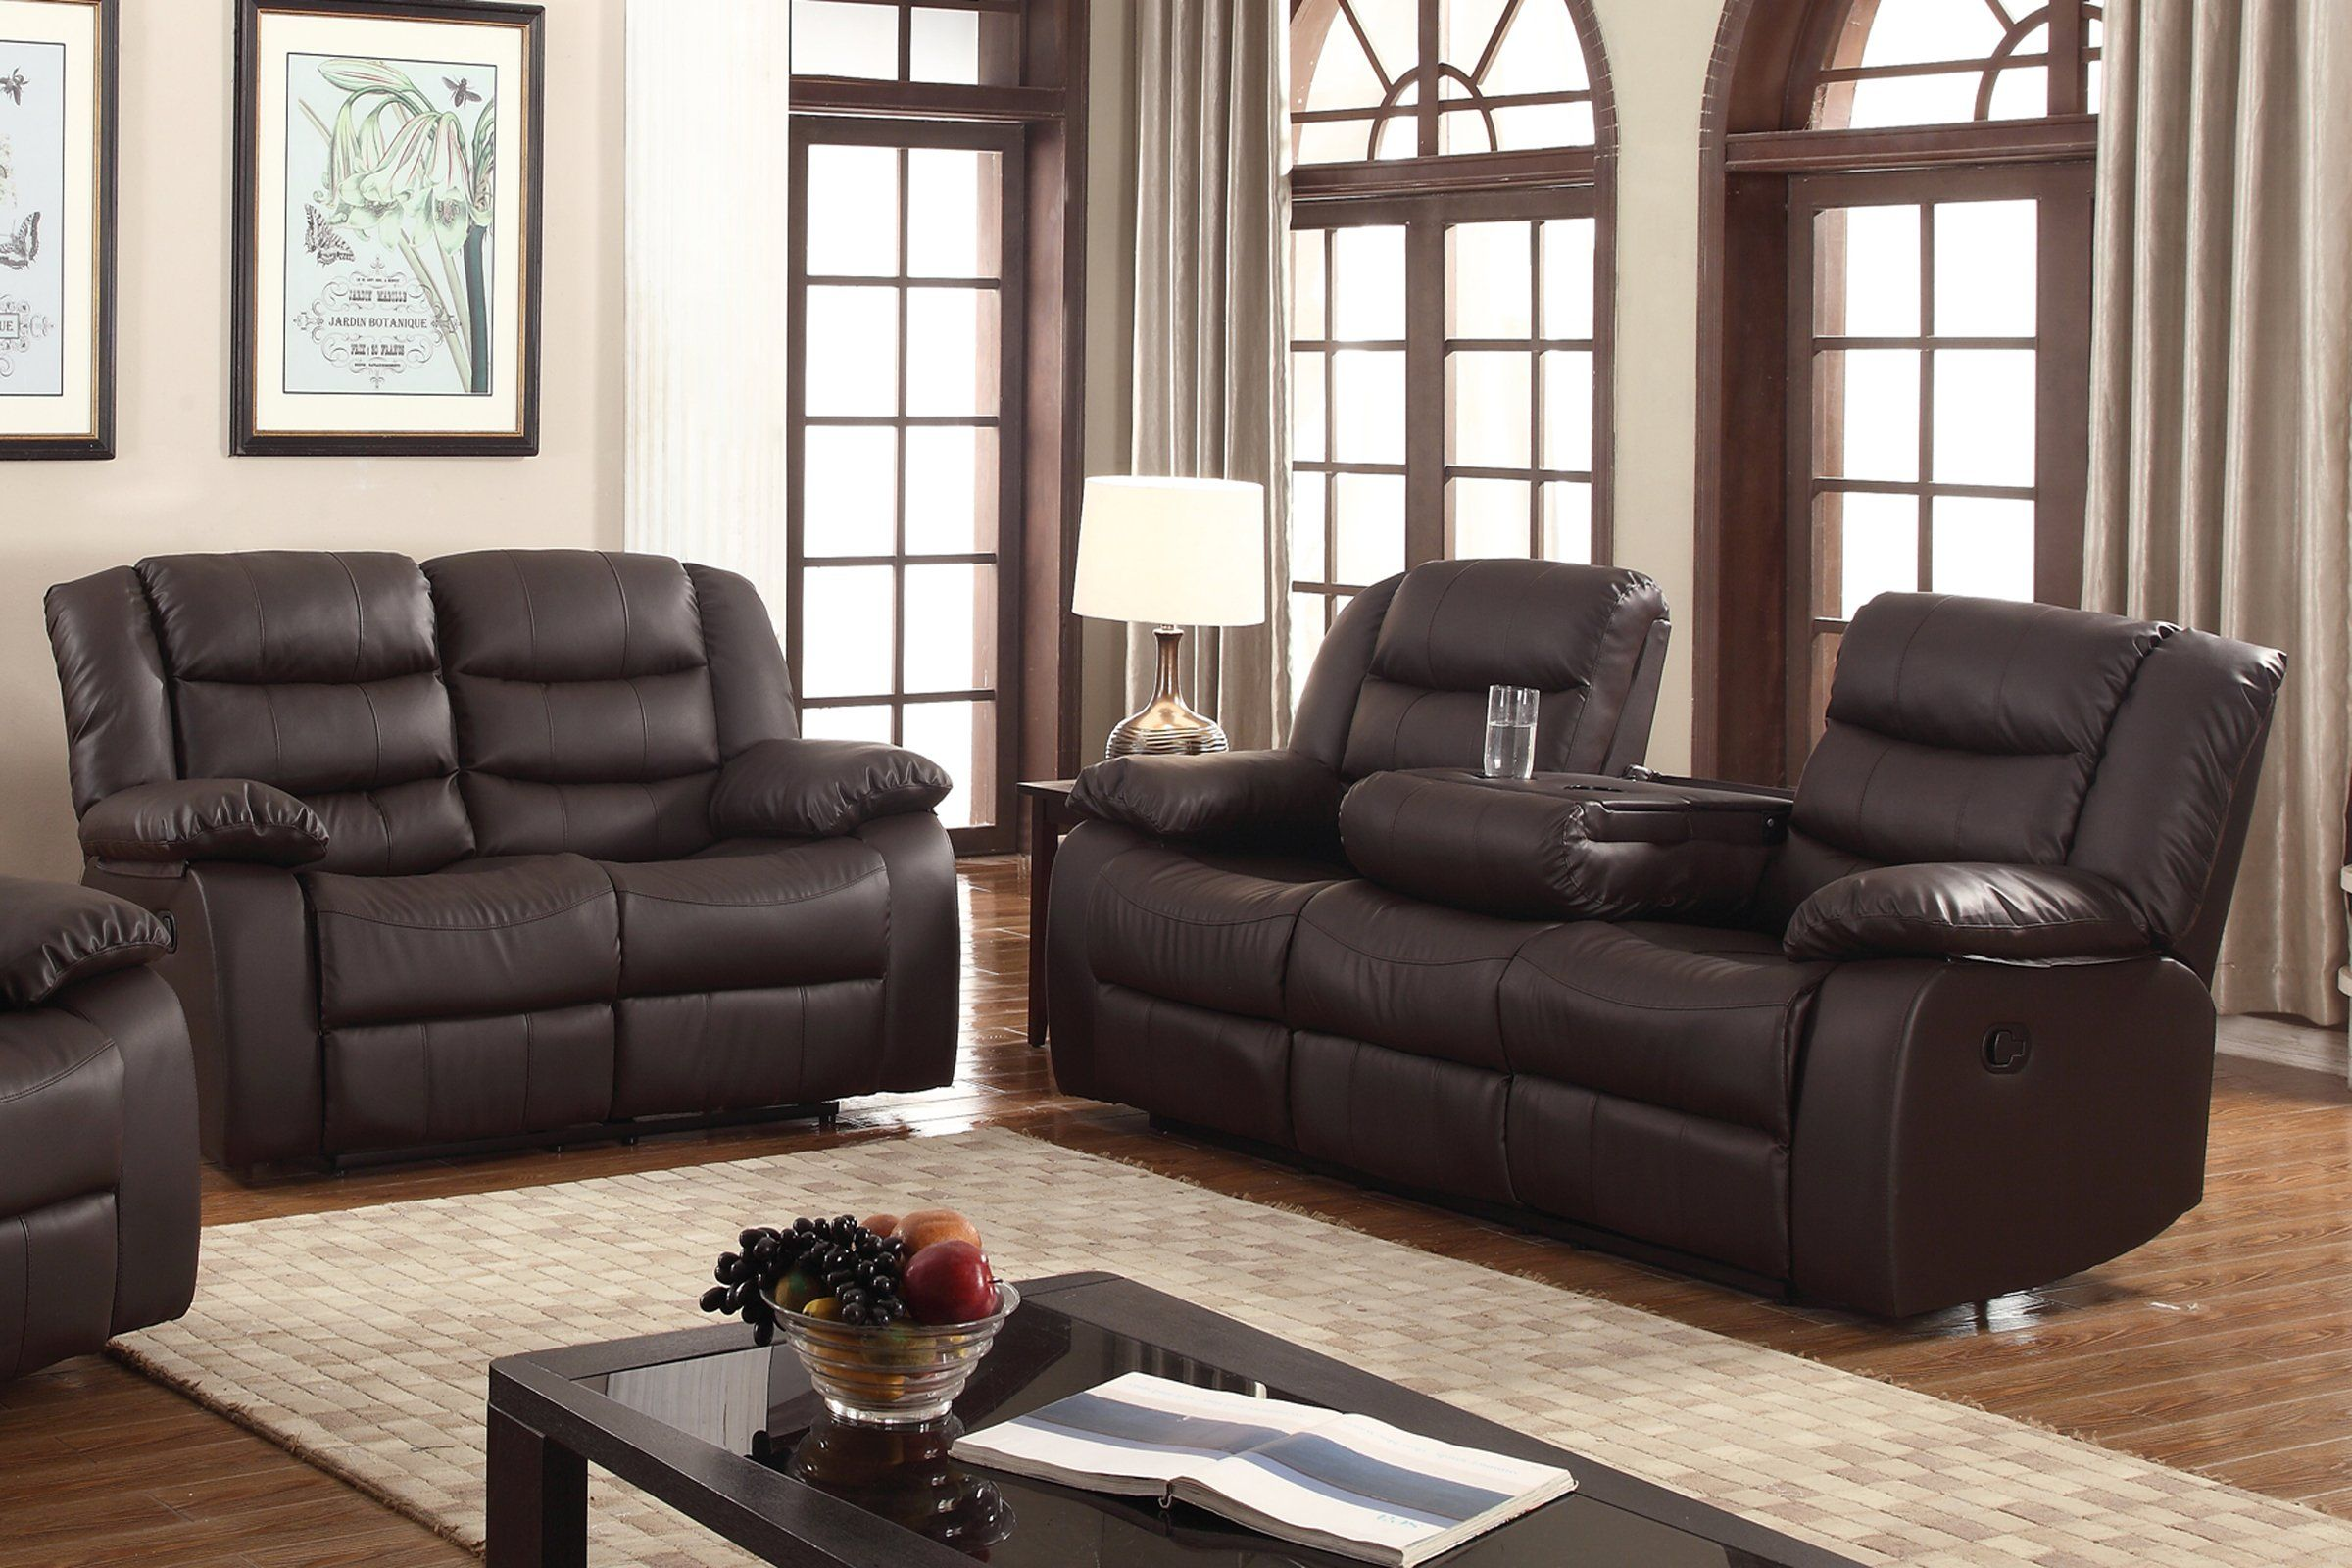 CHARLES Modern Sectional Living Room Couch Set BROWN Faux Leather Reclining Sofa